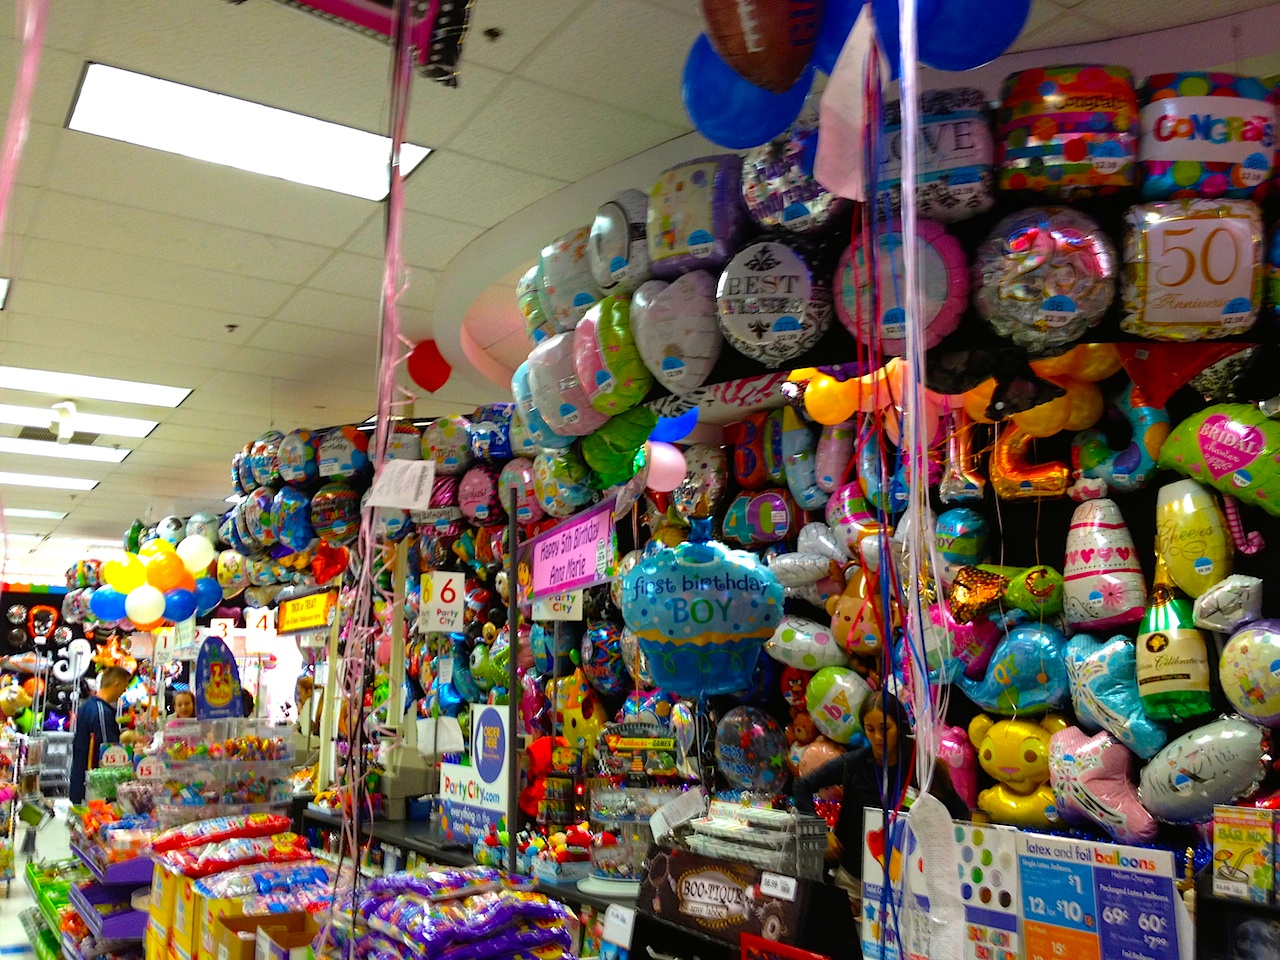 7 items· From Business: Whether you're hosting a kid's birthday party, a baby shower, a Halloween costume party, or a holiday event, Party City in Novi offers themed party supplies for e Add to mybook Remove from mybook.